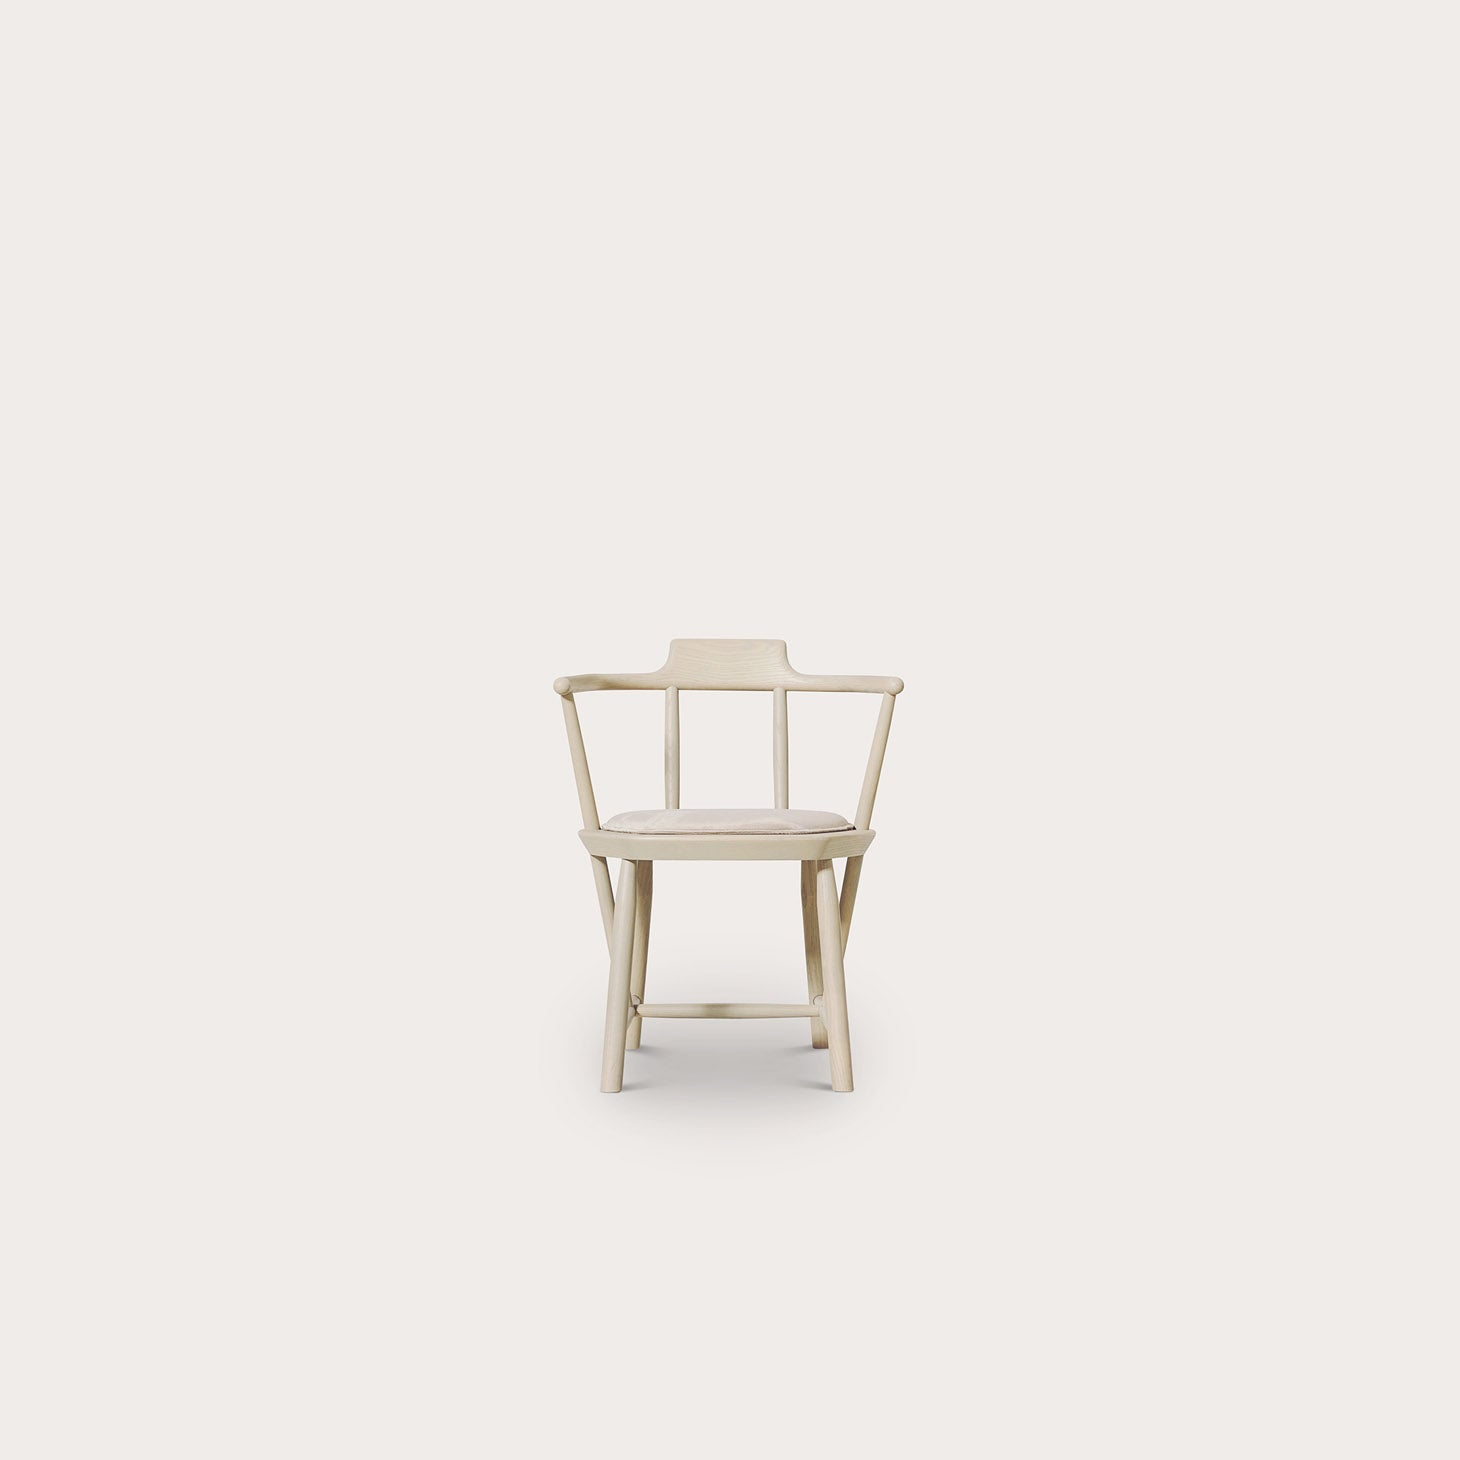 Oiseau Seating Yabu Pushelberg Designer Furniture Sku: 247-120-10265